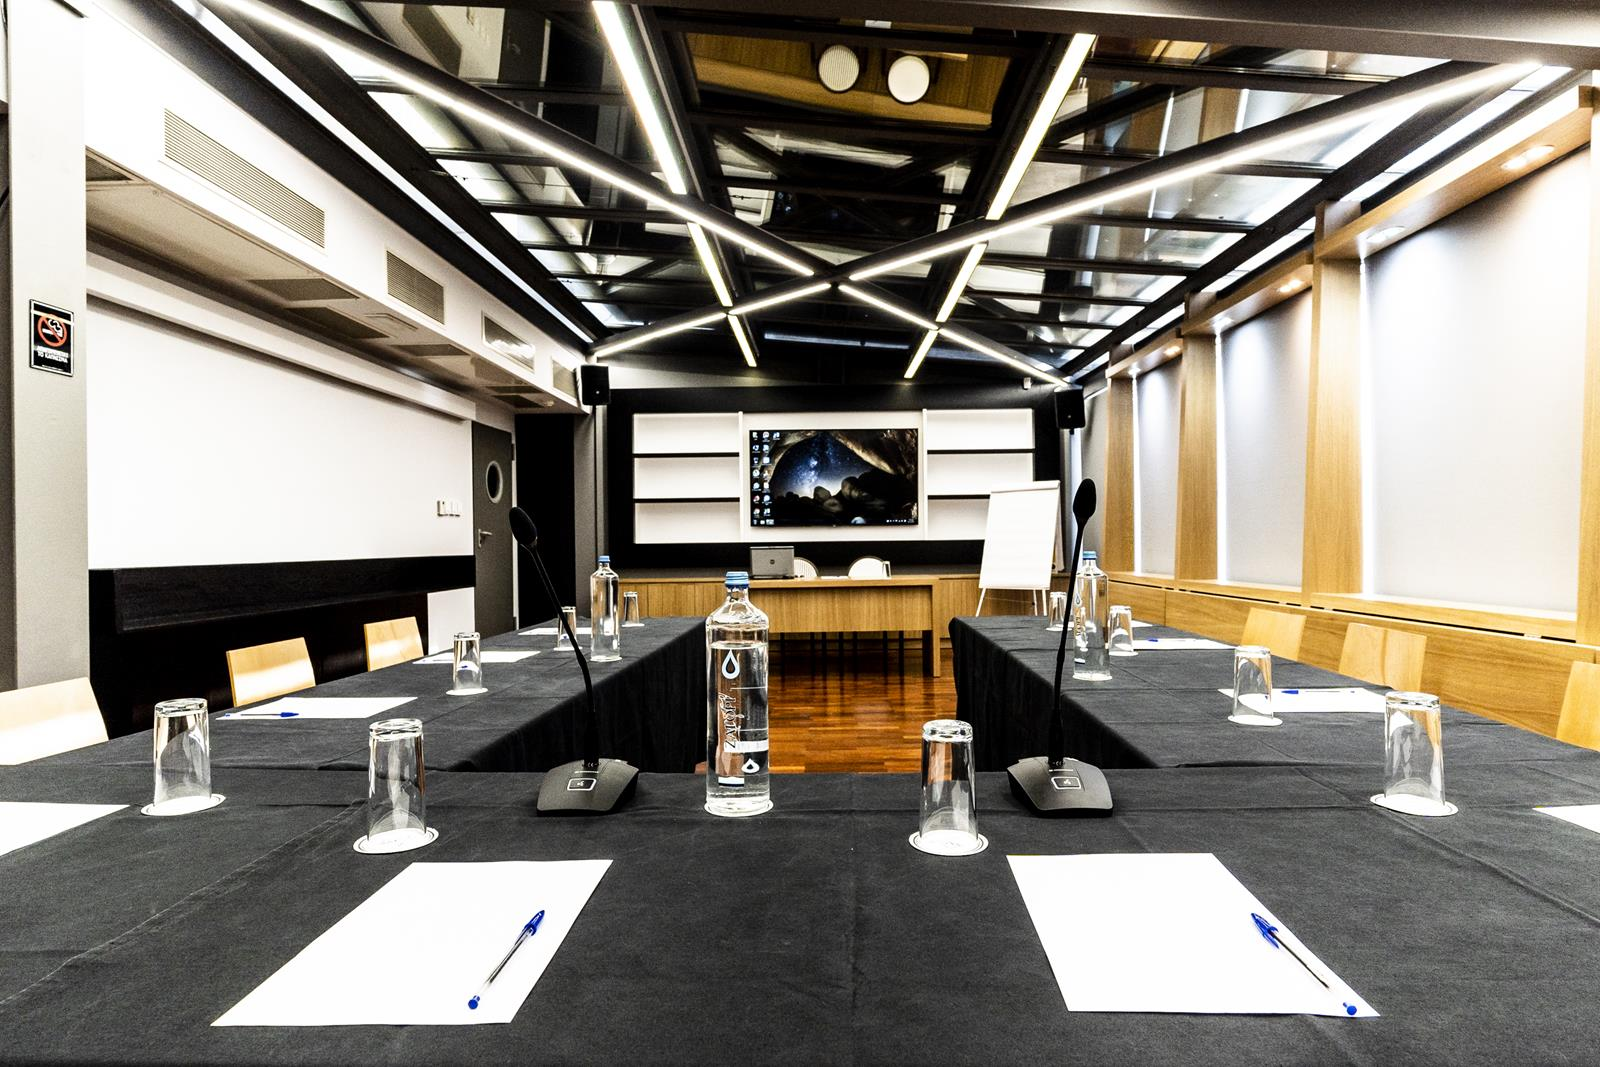 Conference Rooms (13) (Copy)